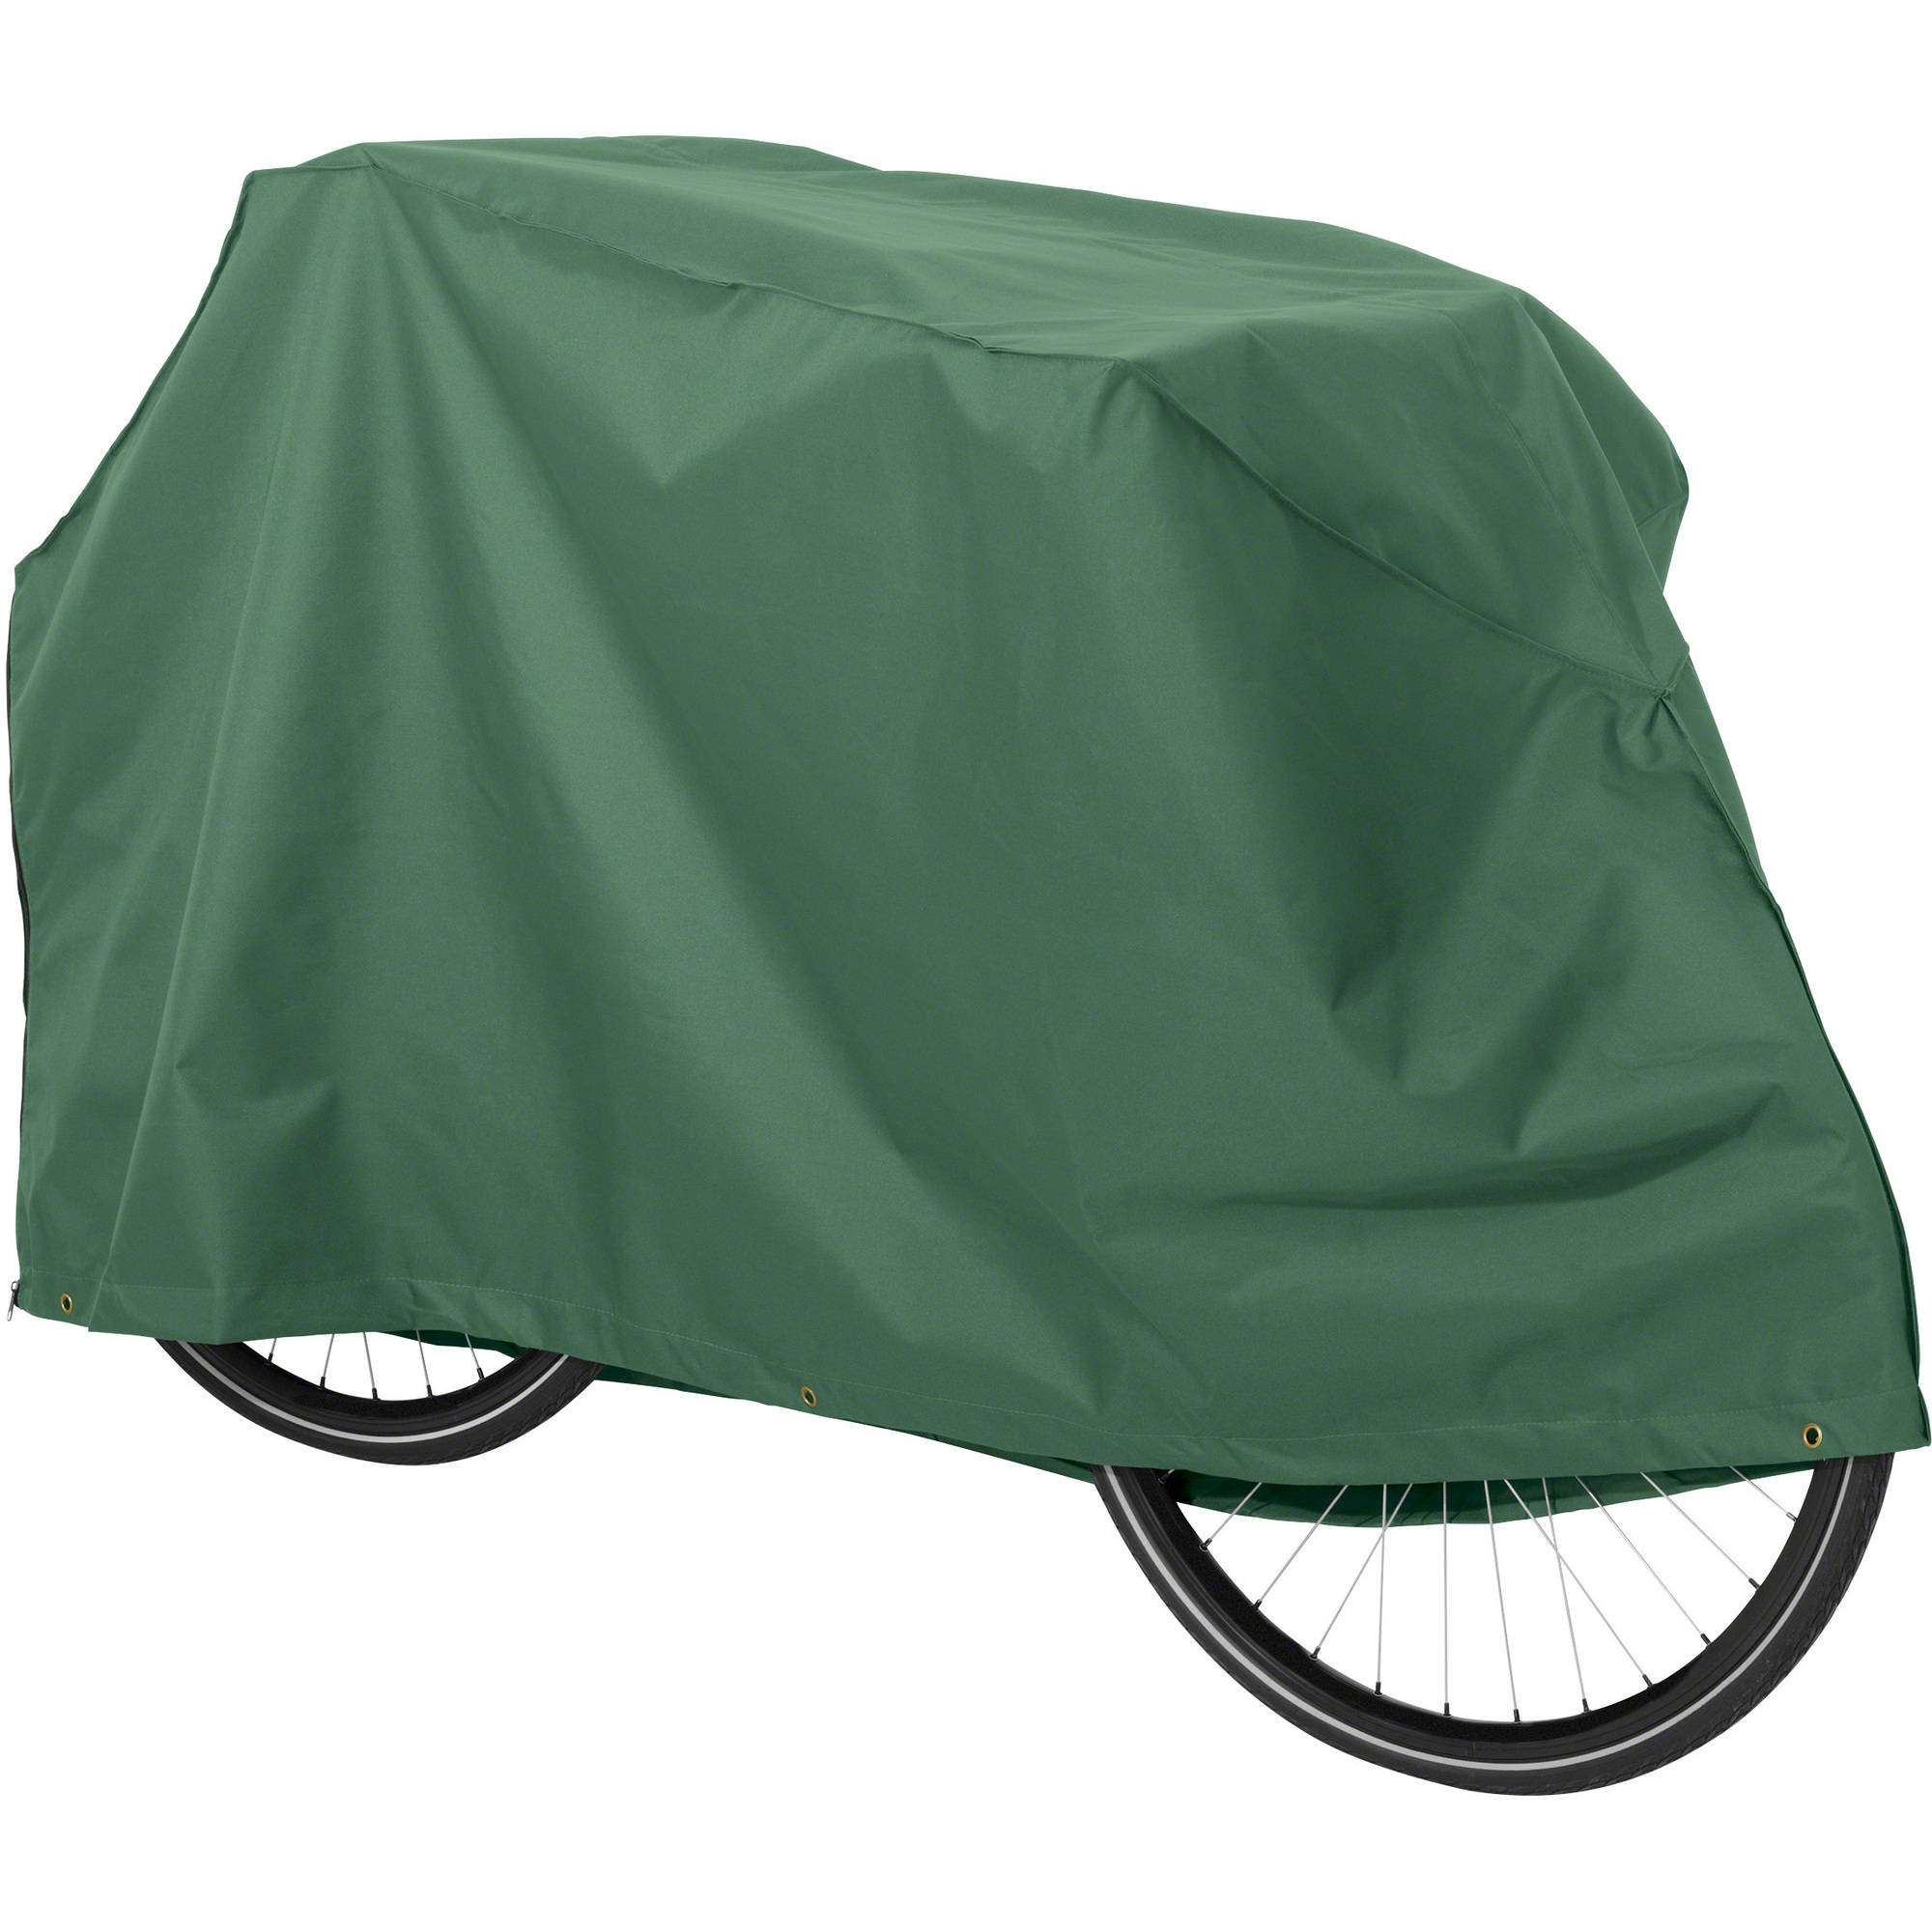 Classic Accessories Atrium Bicycle Storage Cover, Green